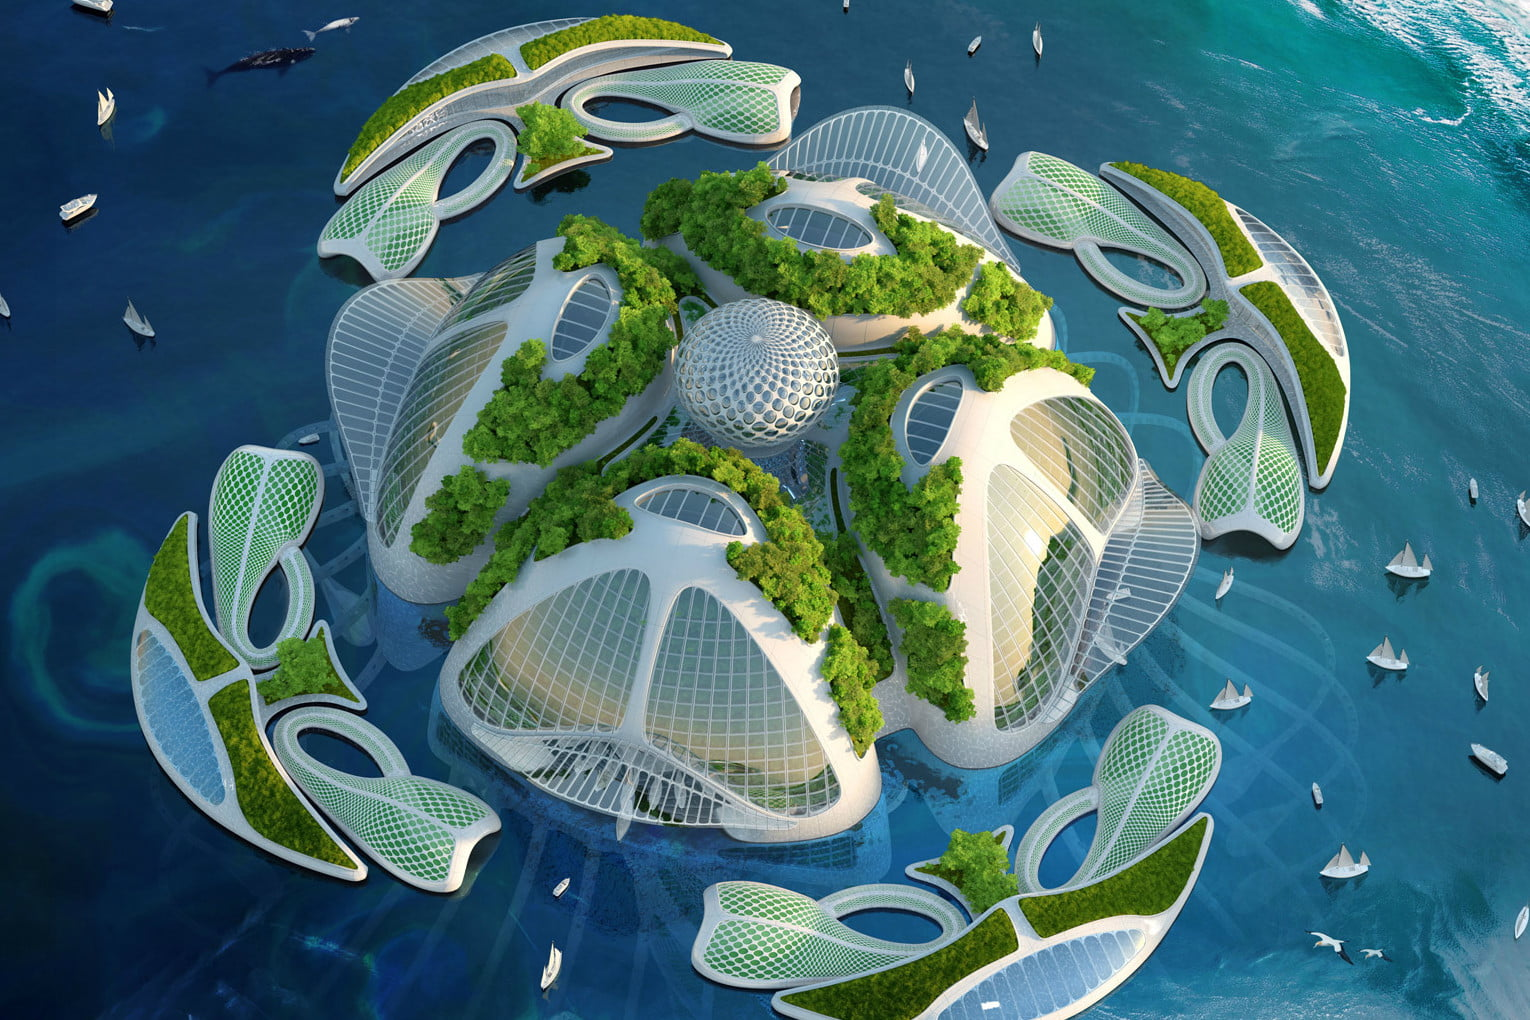 vincent callebaut imagines 3d oceanscrapers made of trash oceanscraper 3